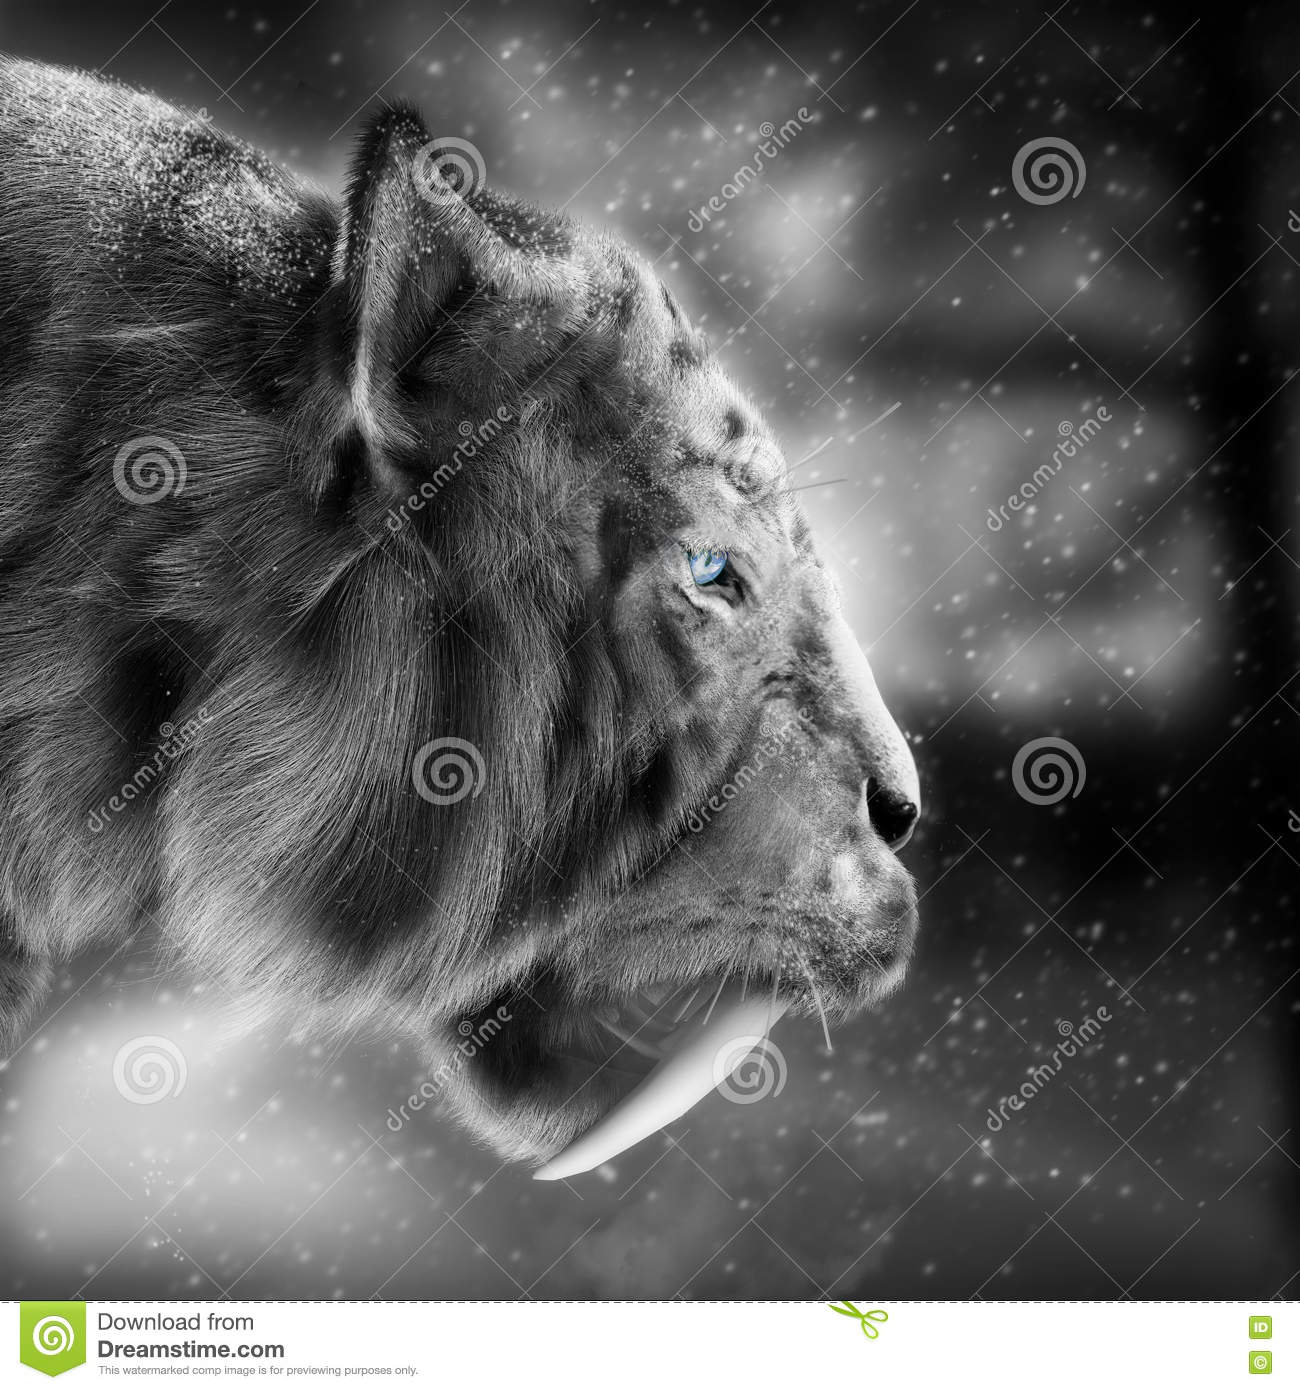 White tiger sabertooth stalking its pray with a snowing winter background .